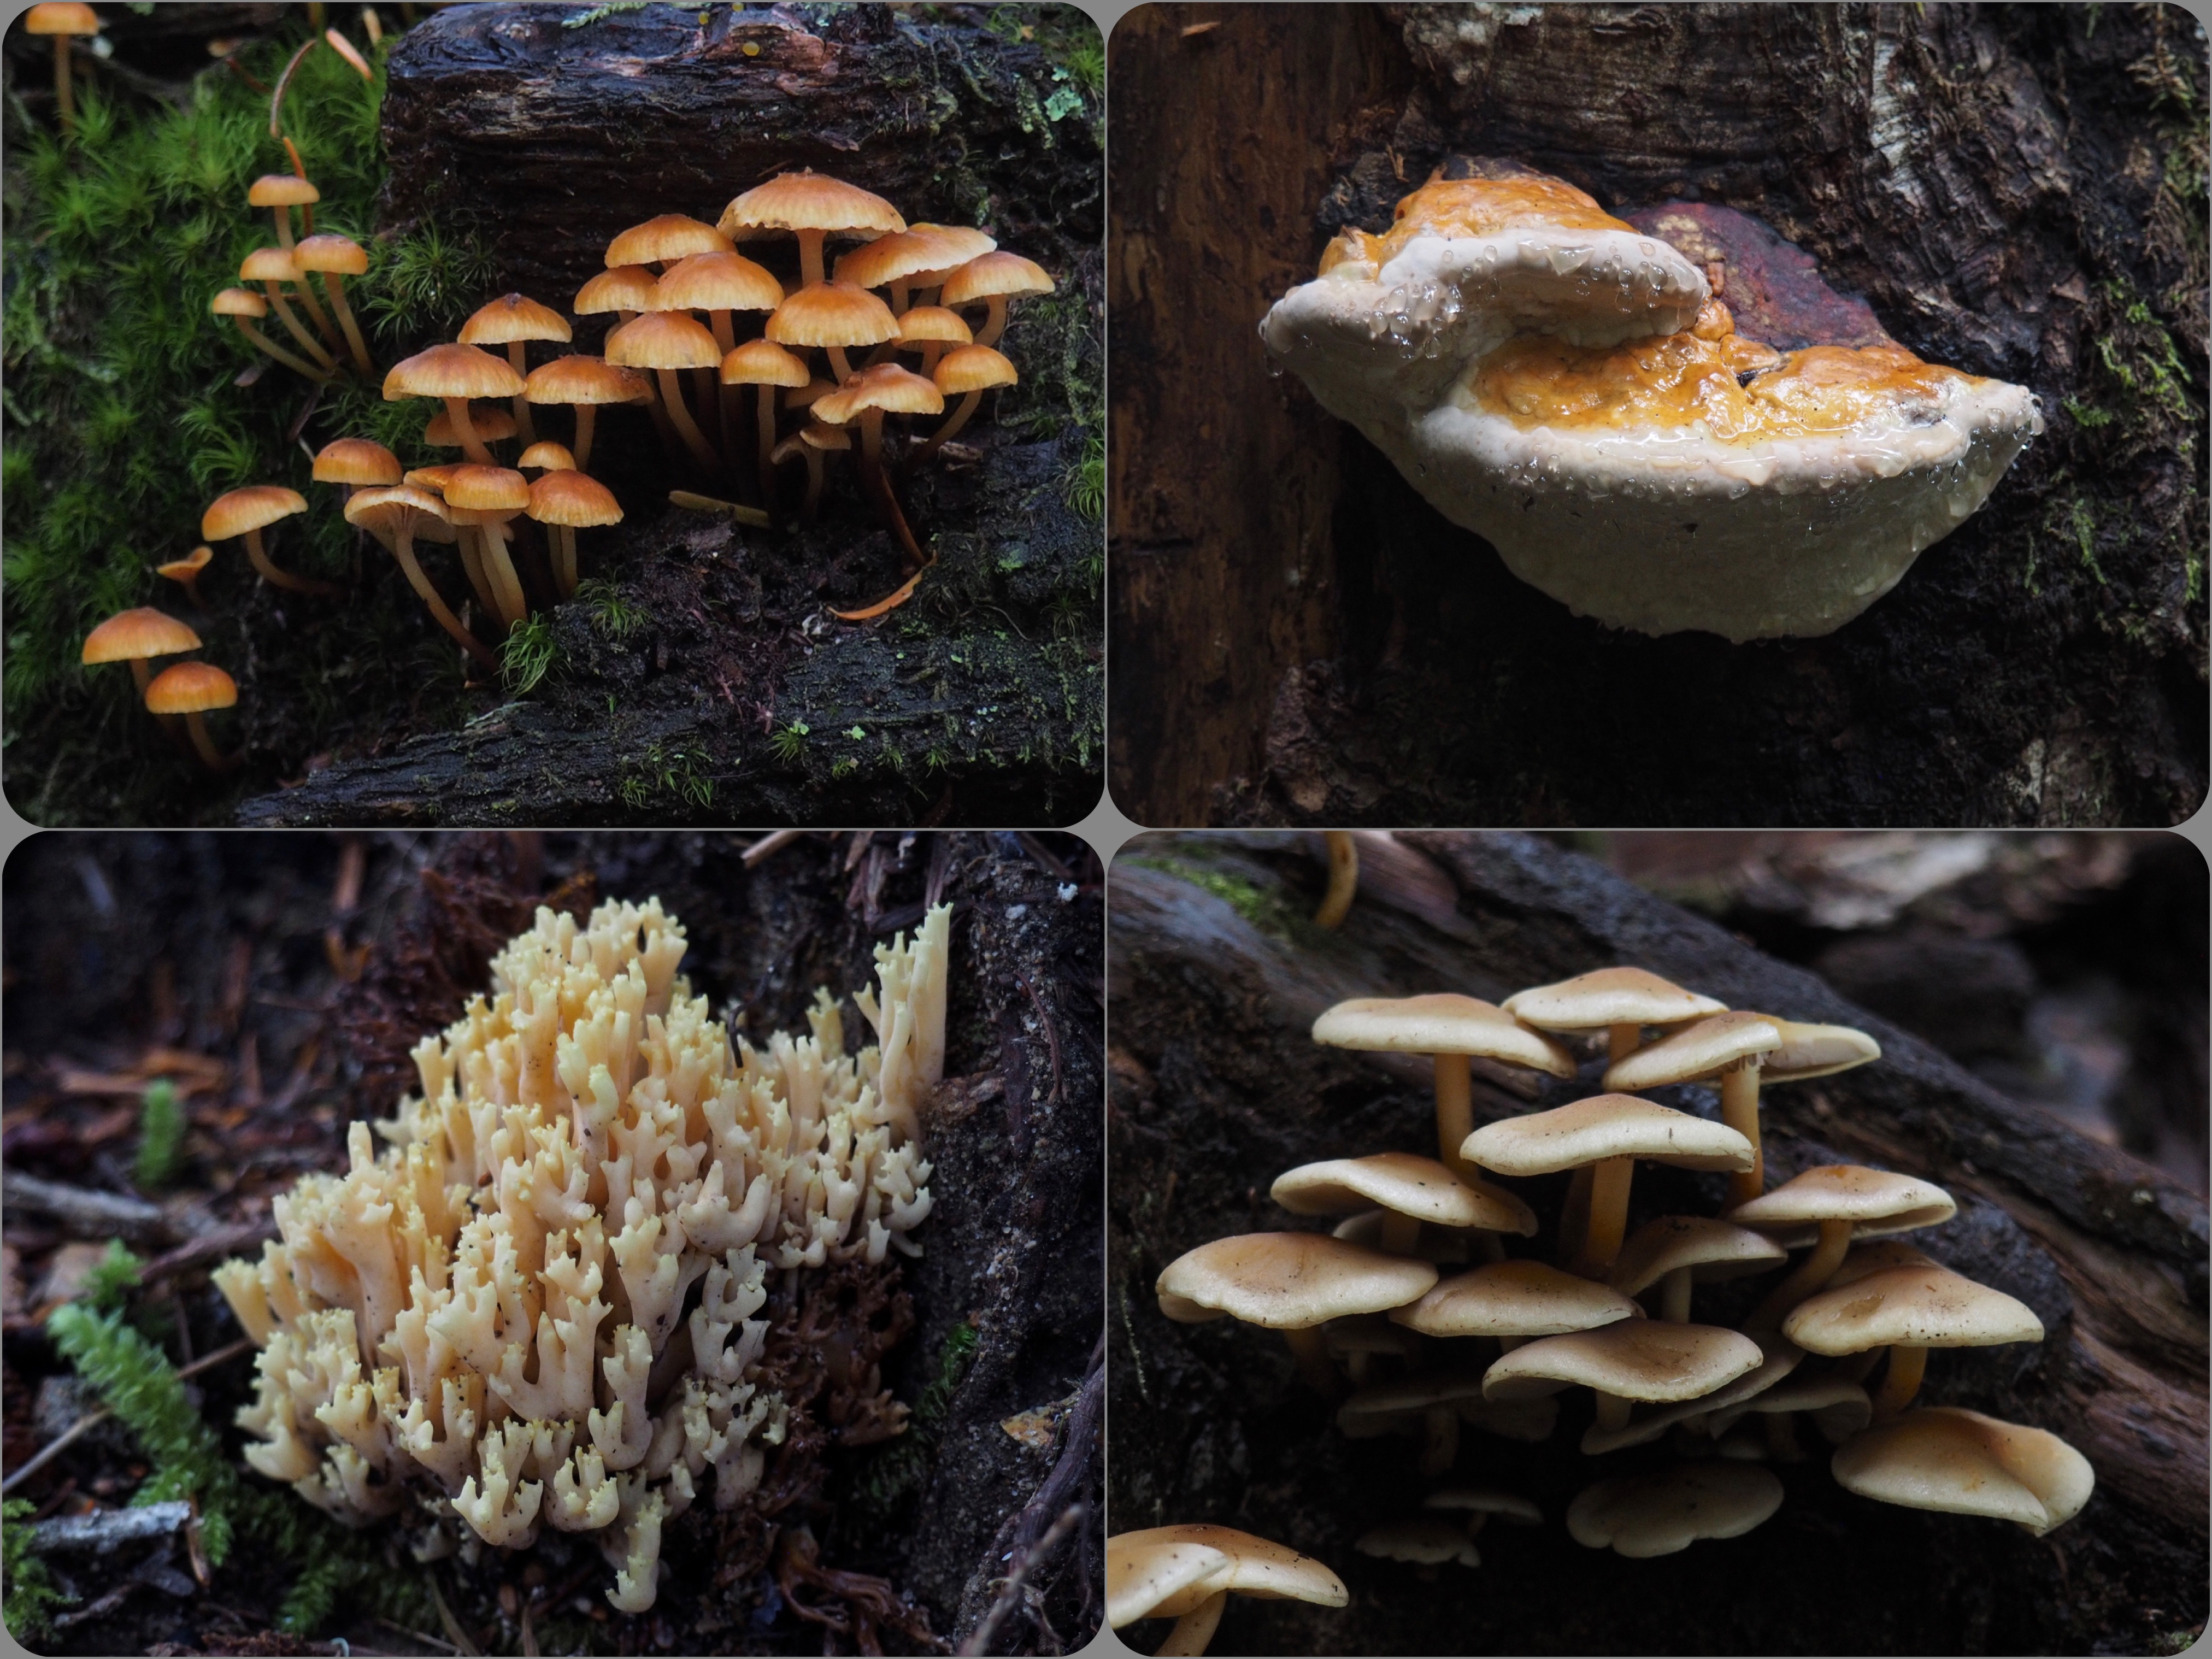 The forest's deep shade and damp litter foster an abundance of unusual fungi, including various mushrooms, wood conks, and coral fungi. Blanca Lake Trail, September 25, 2016.